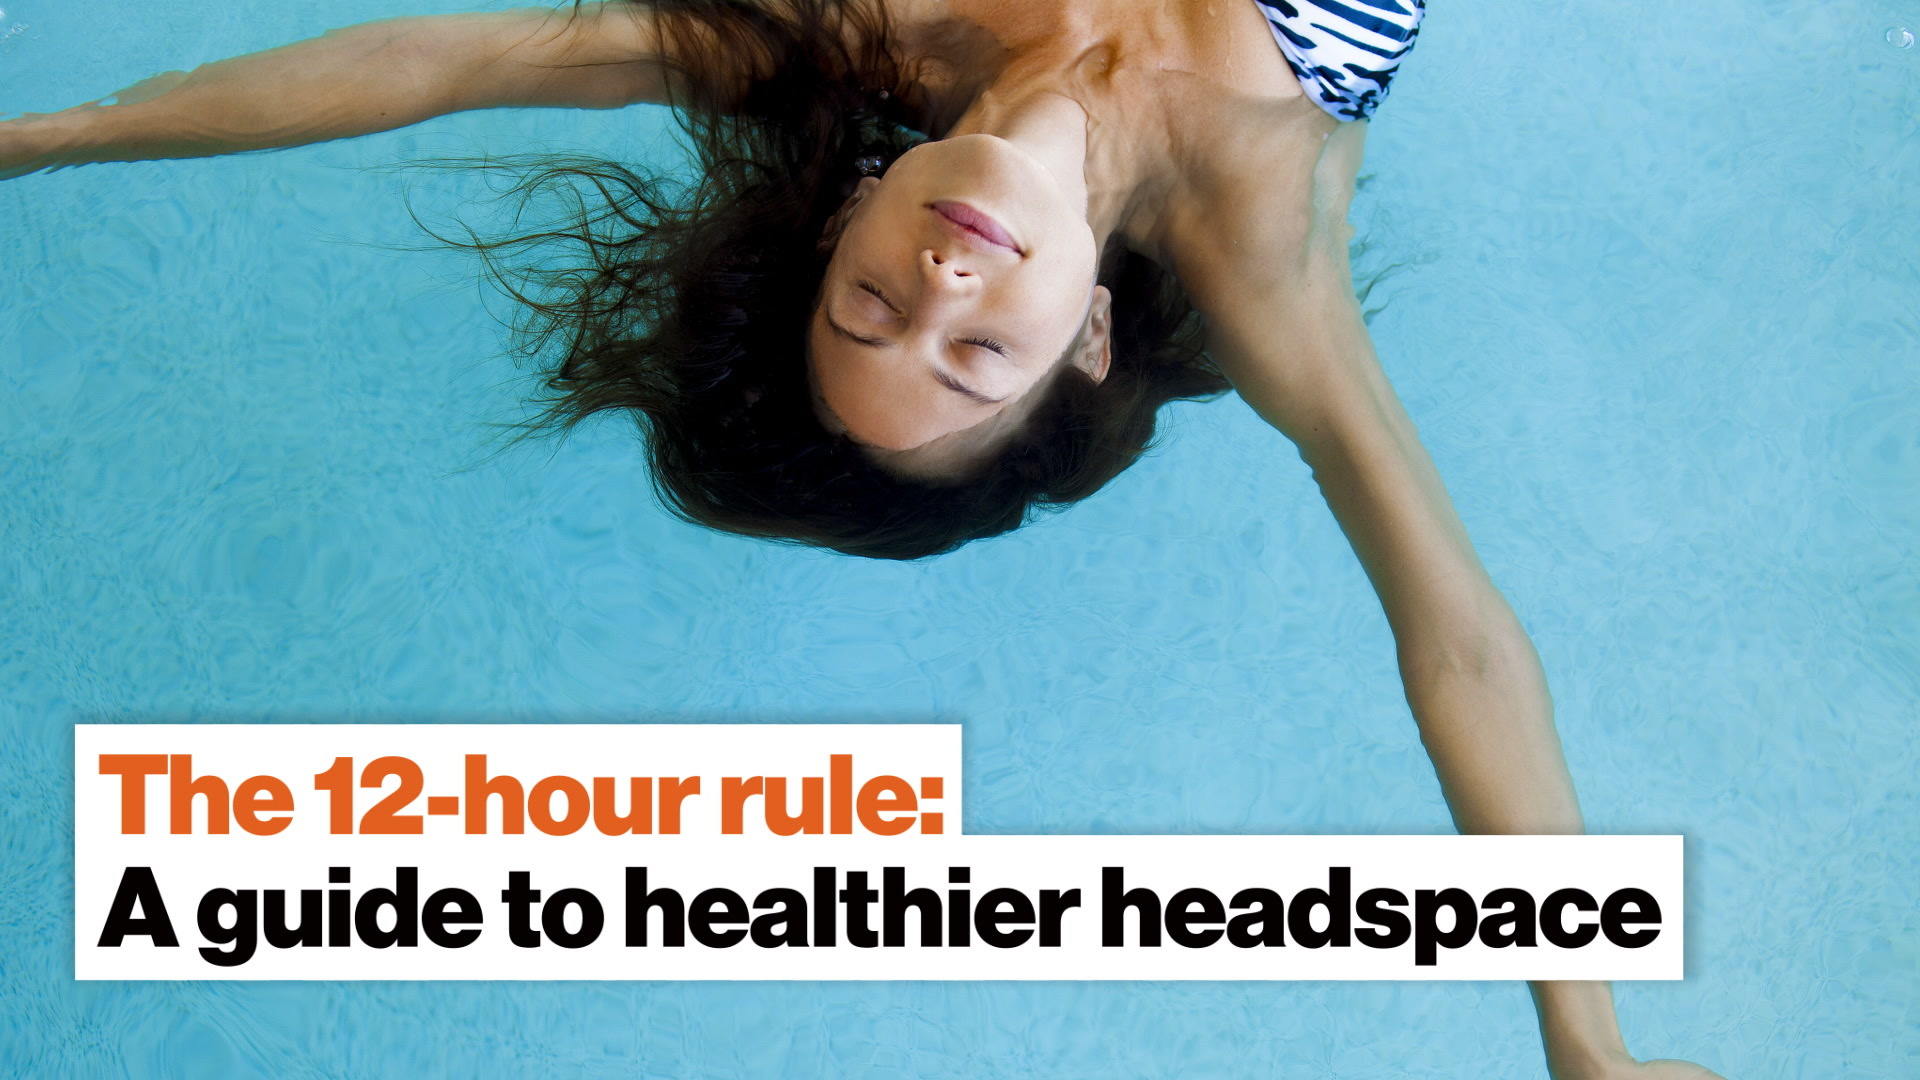 The 12-hour rule: A guide to healthier headspace